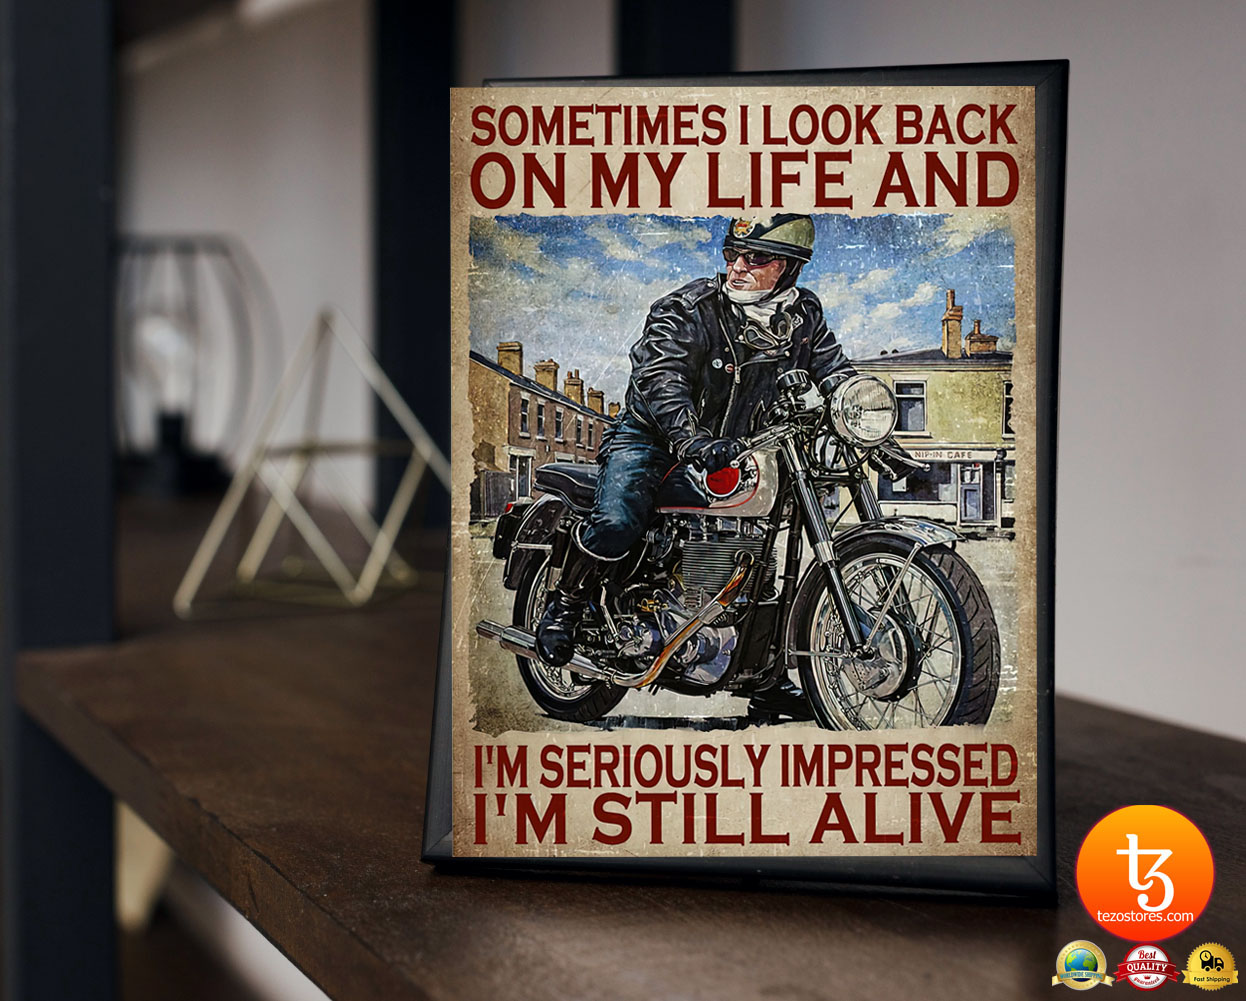 Motorcycles man Sometimes I look back on my life and Im seriously impressed Im still alive poster 23 1